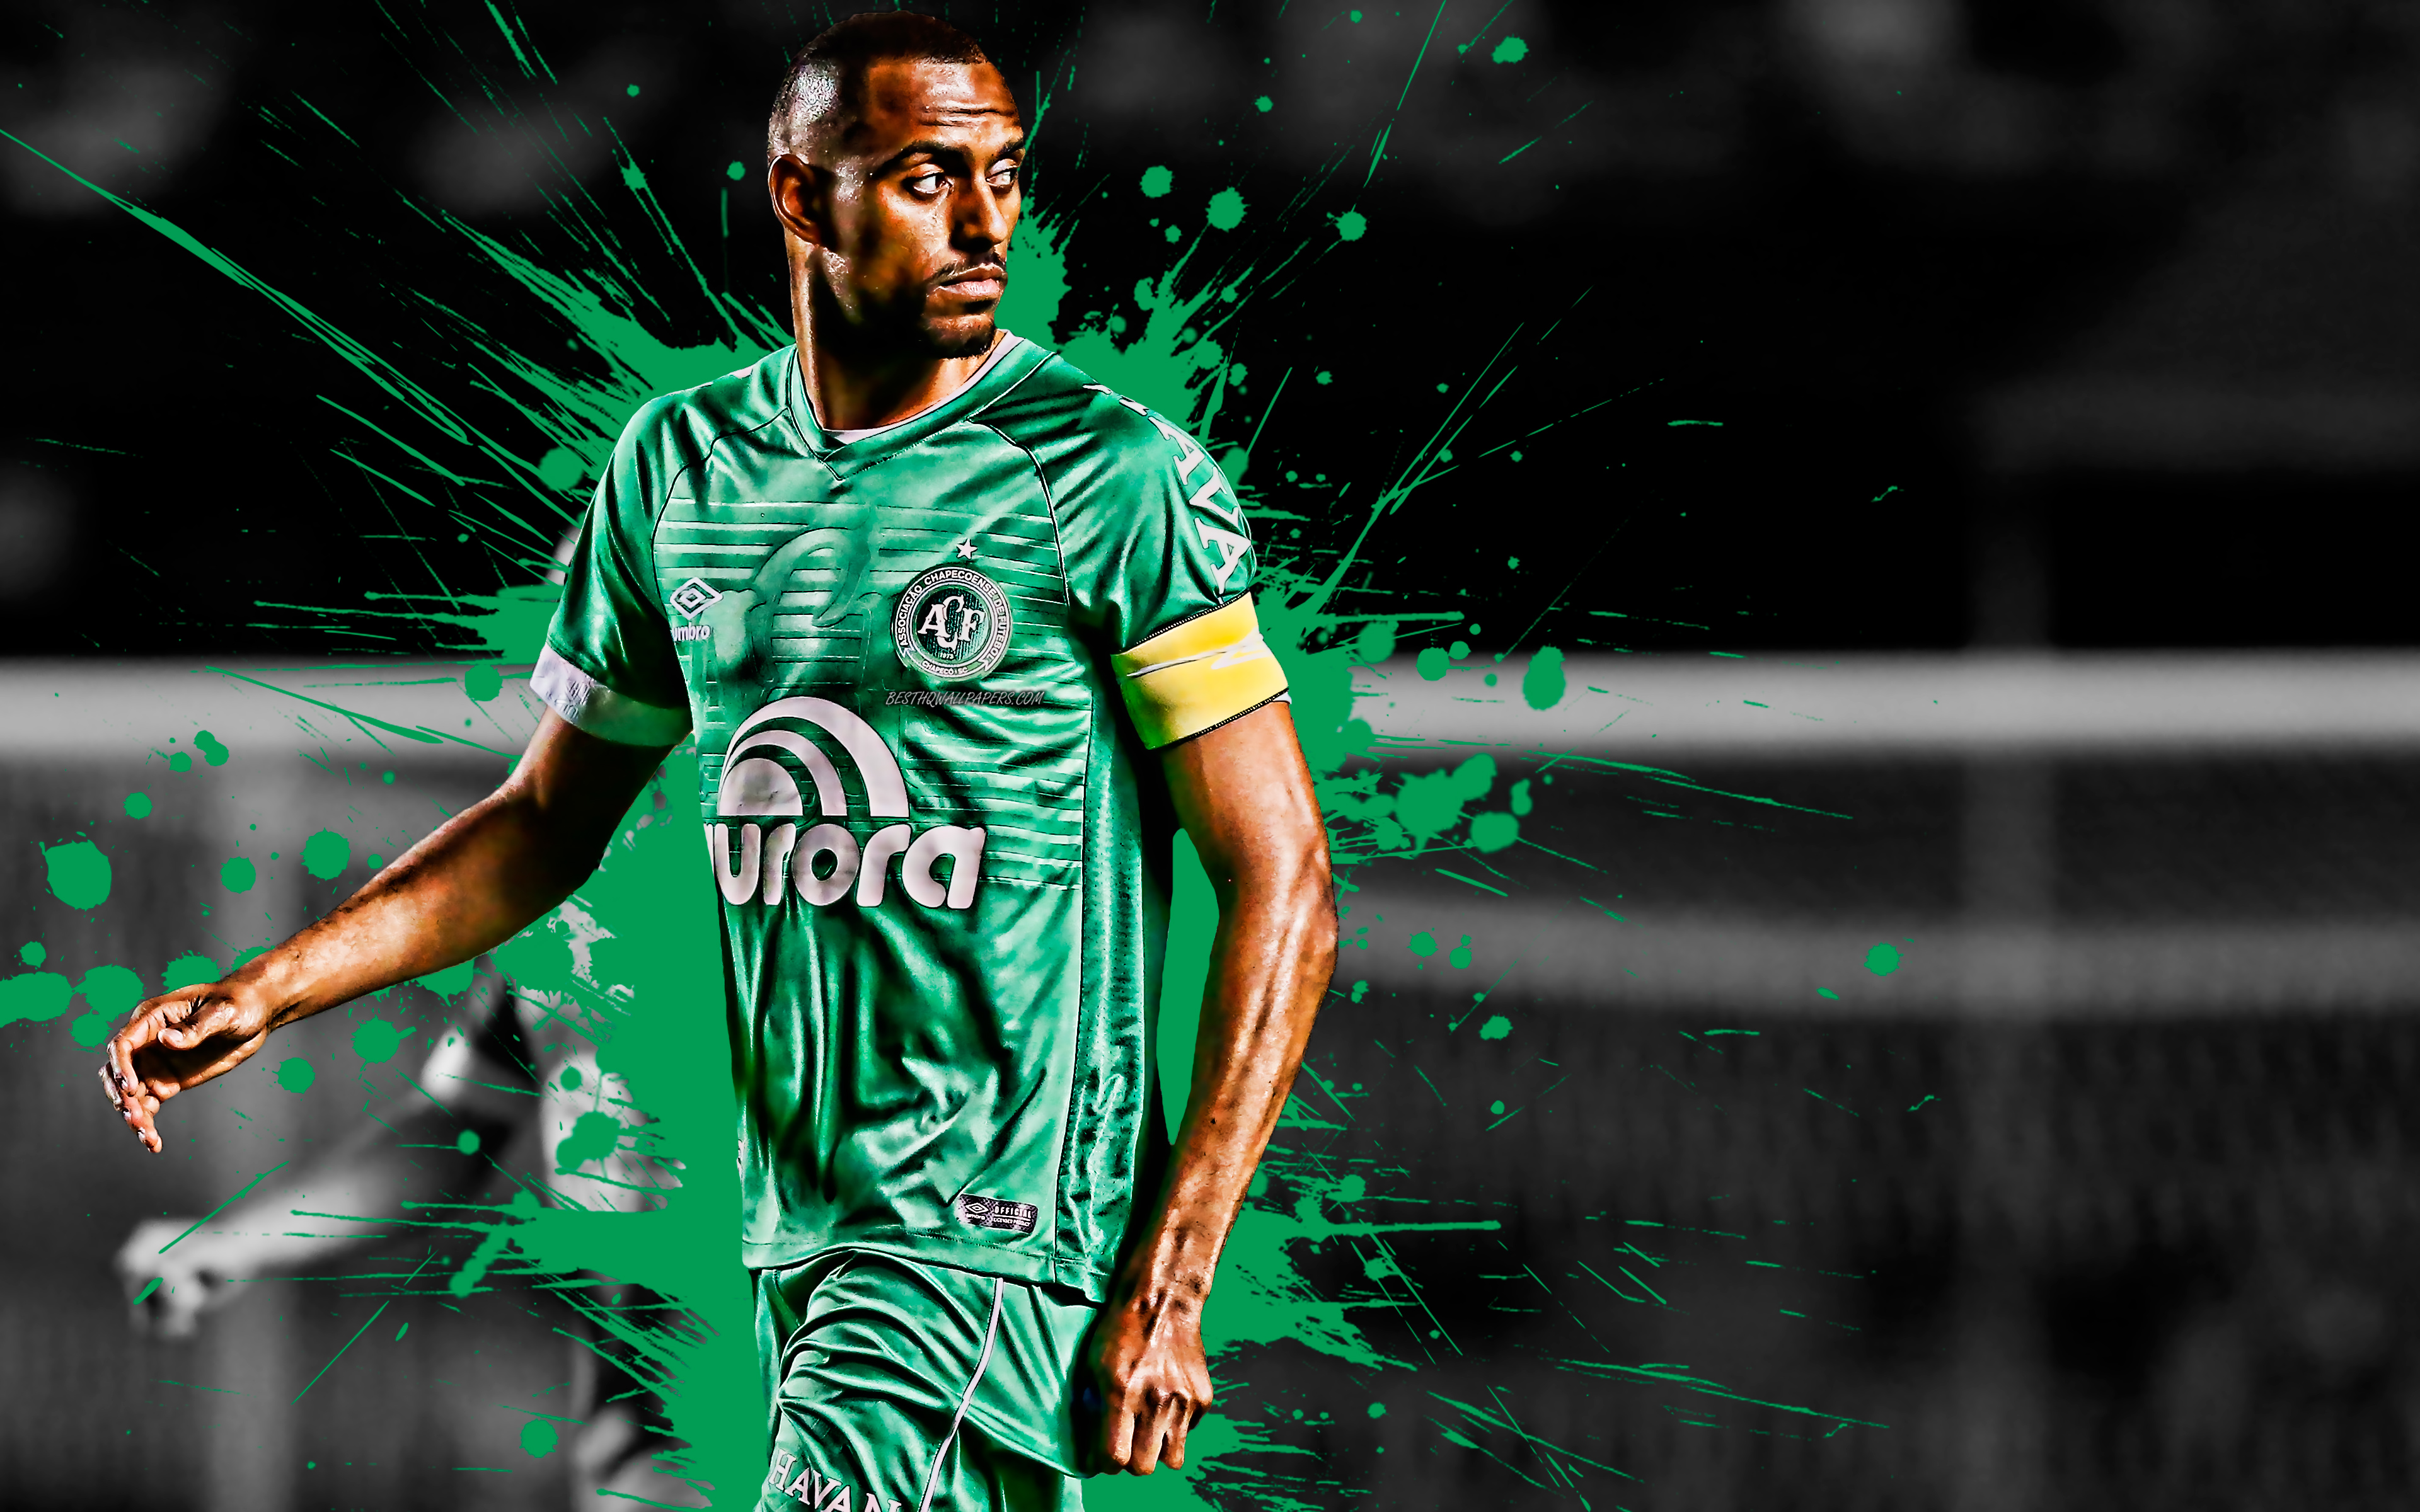 Douglas, 4k, Brazilian Football Player, Chapecoense, - Jogador Douglas Da Chapecoense Png 2019 , HD Wallpaper & Backgrounds